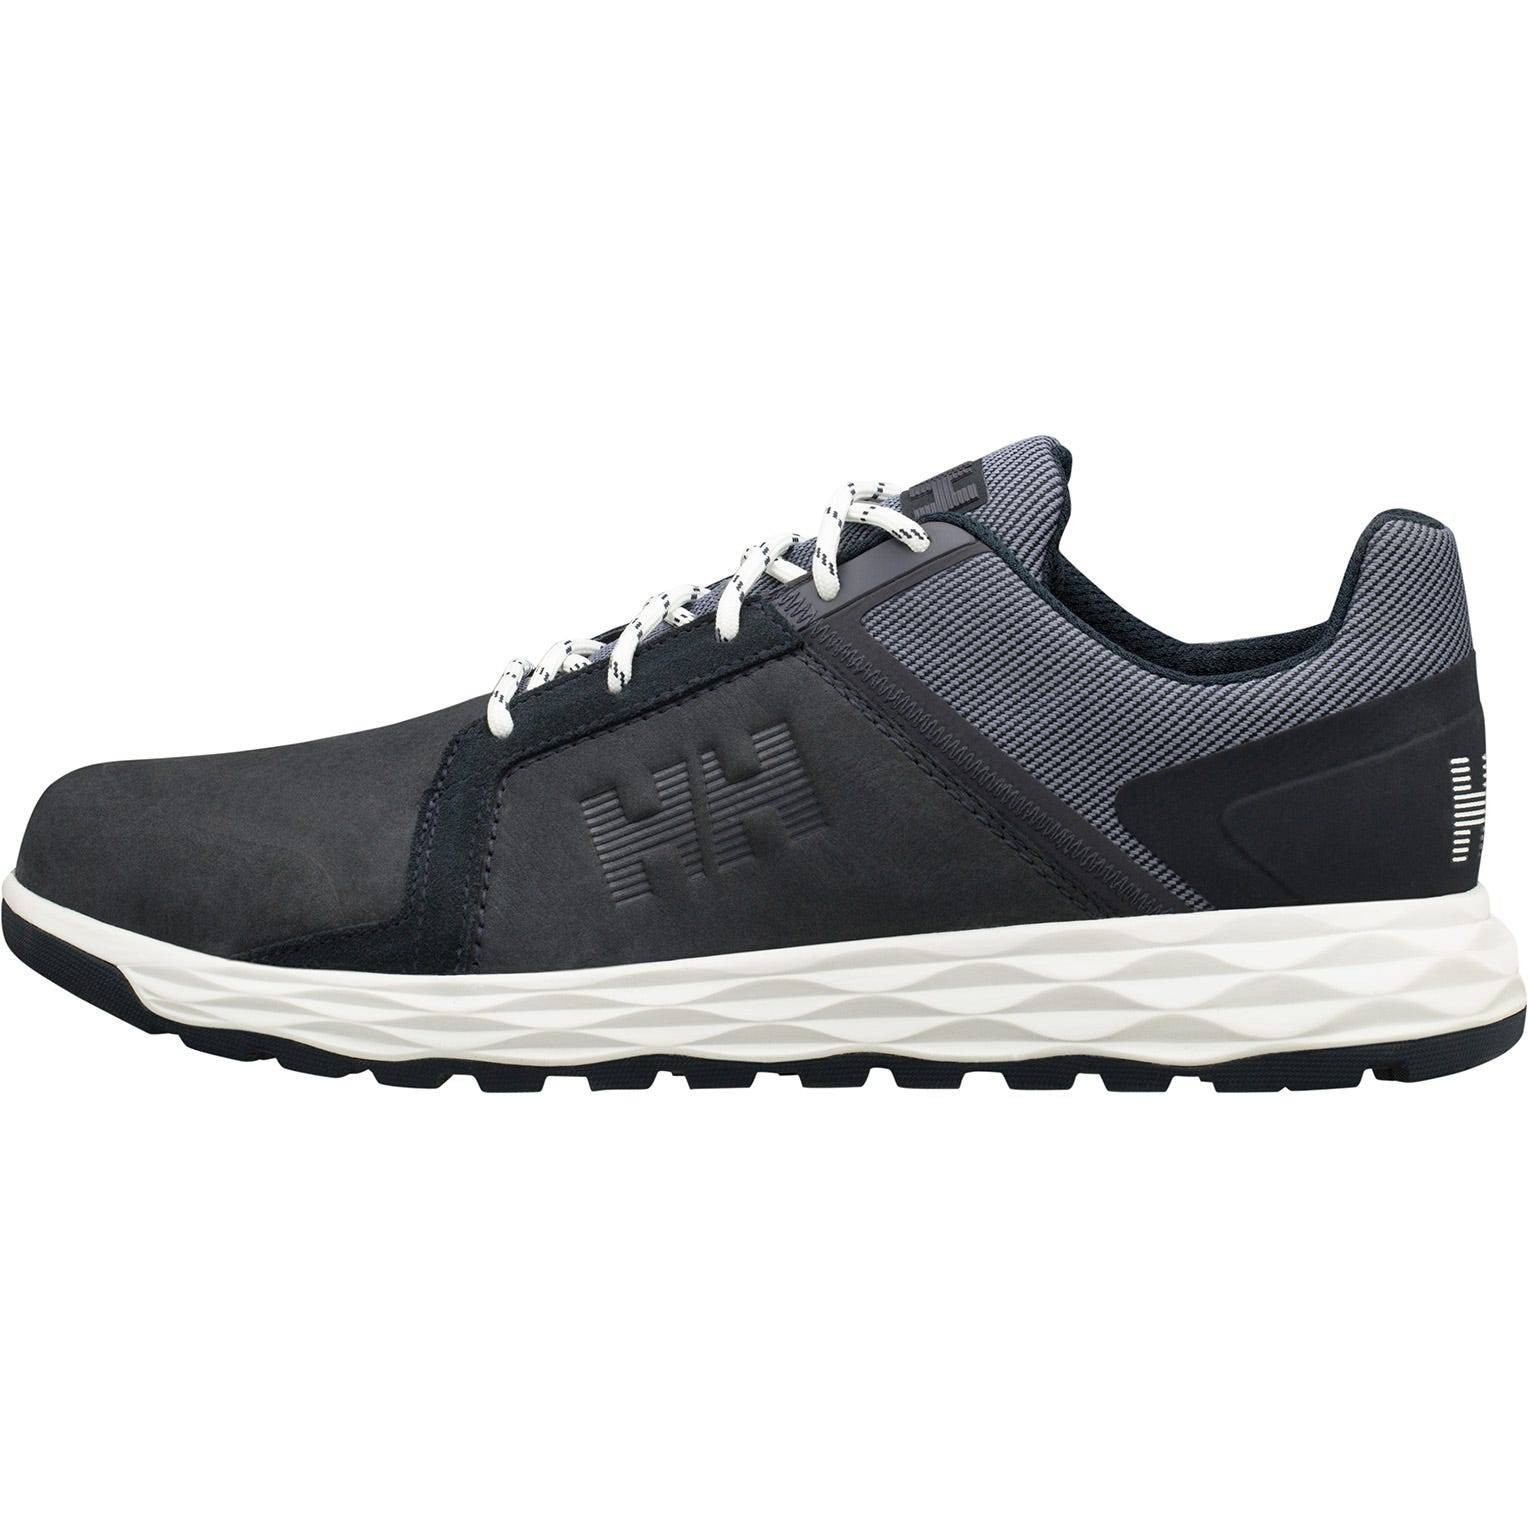 Helly Hansen Gambier Lc Mens Casual Shoe Navy 45/11